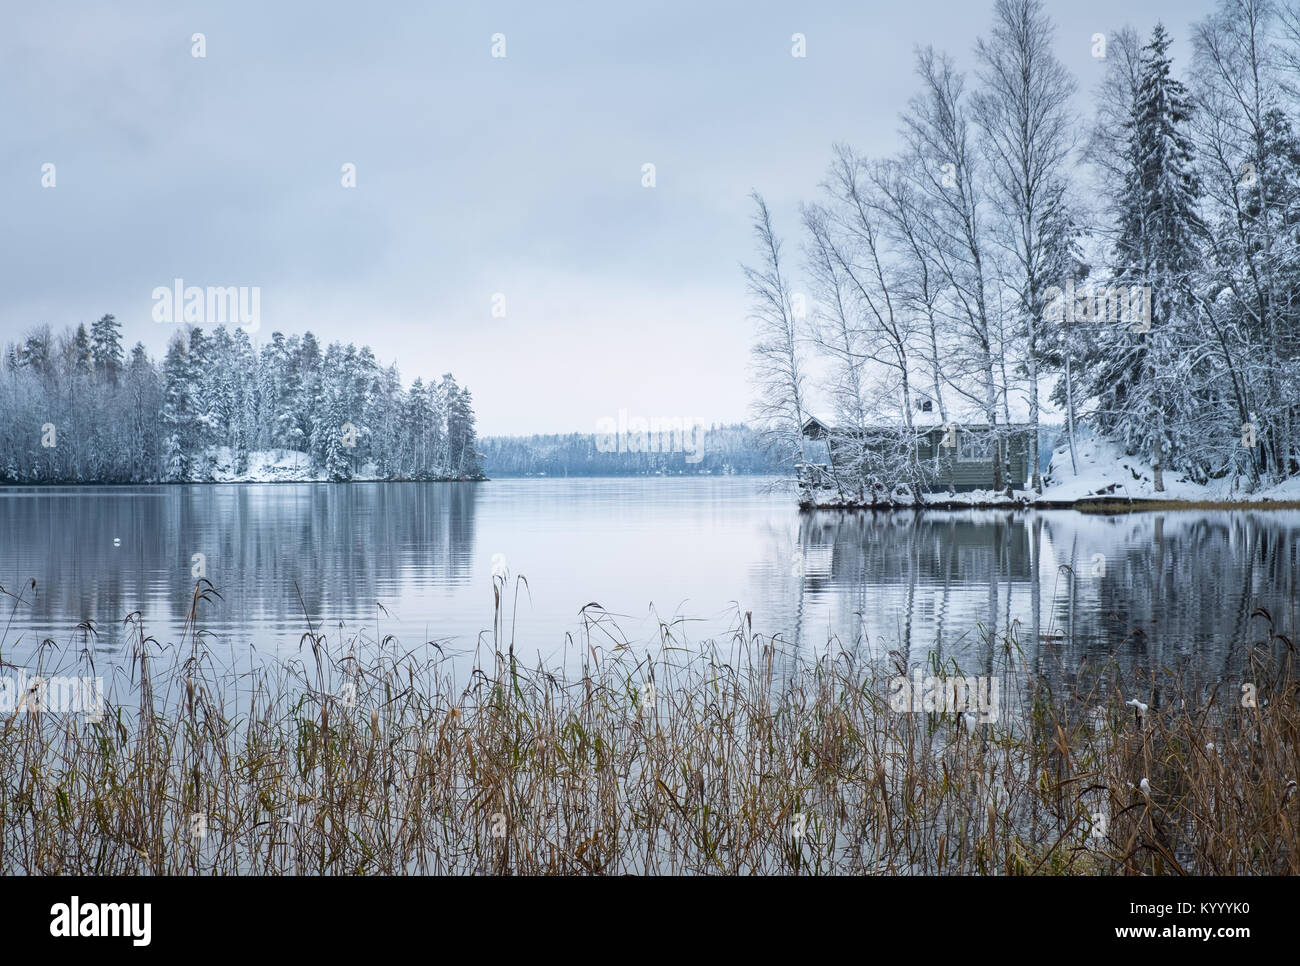 Winter landscape with sauna cottage and peaceful lake at evening in Finland - Stock Image